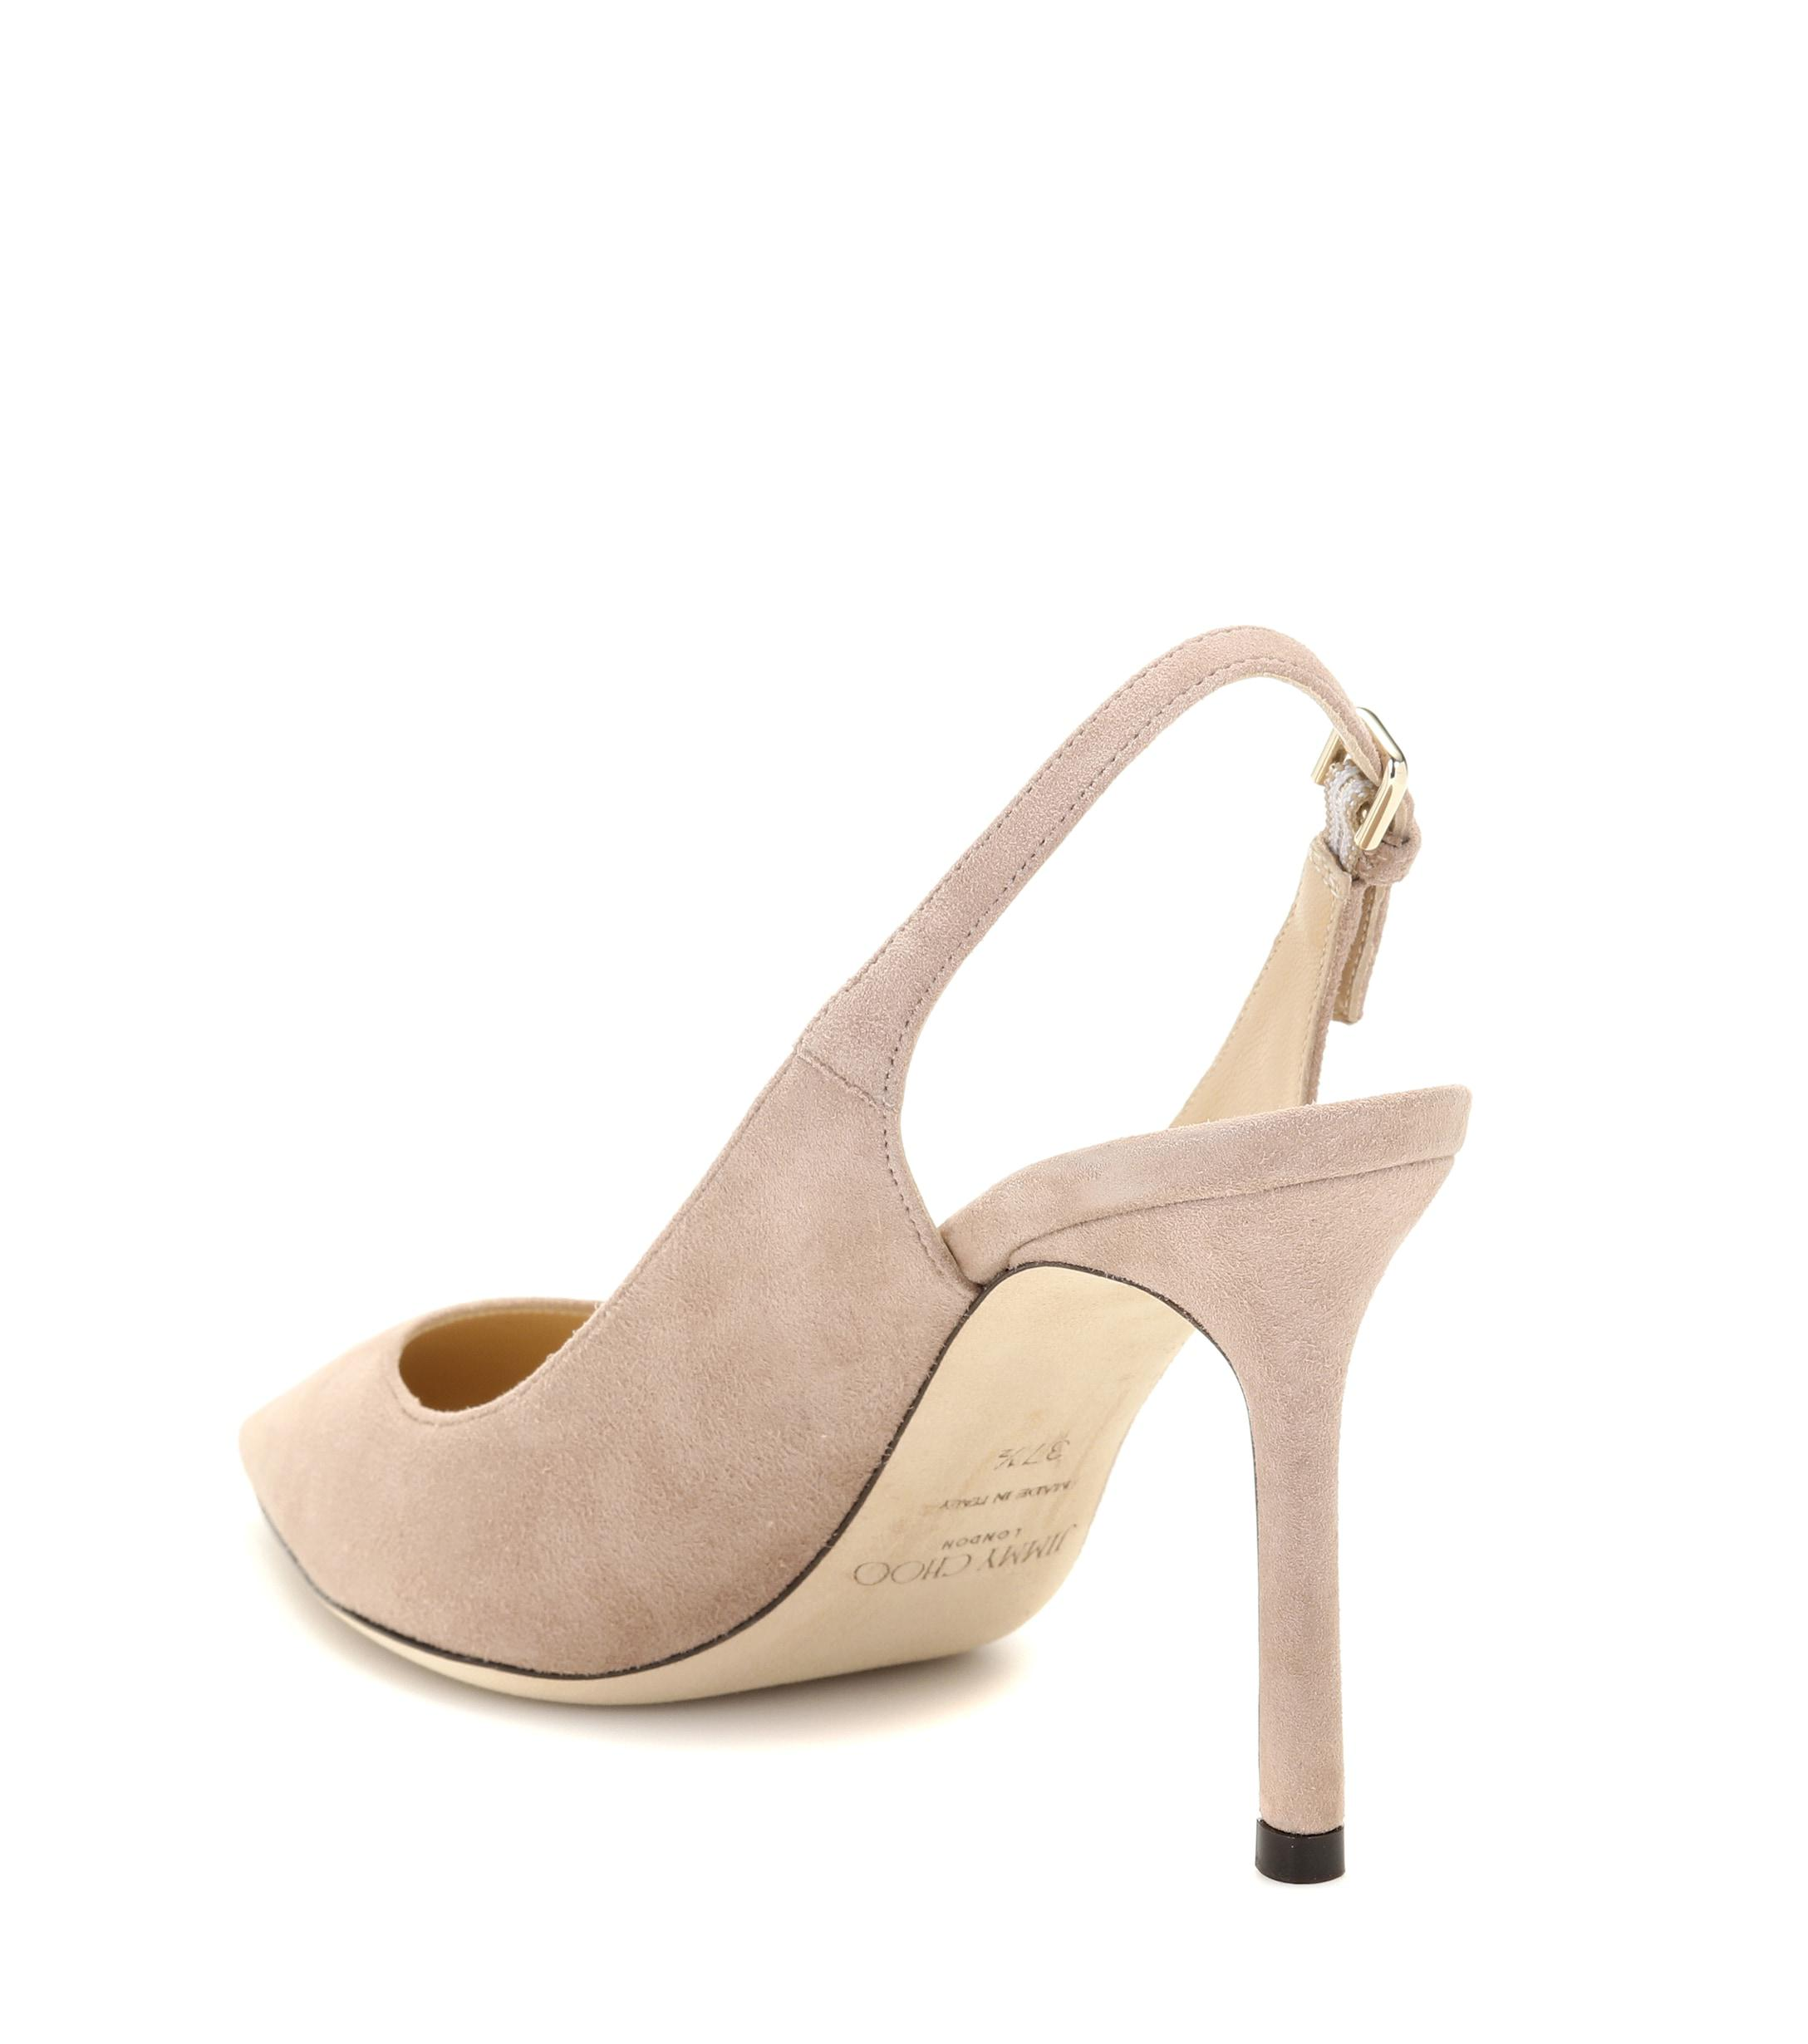 d68448a5bcde Lyst - Jimmy Choo Erin 85 Suede Slingback Pumps in Pink